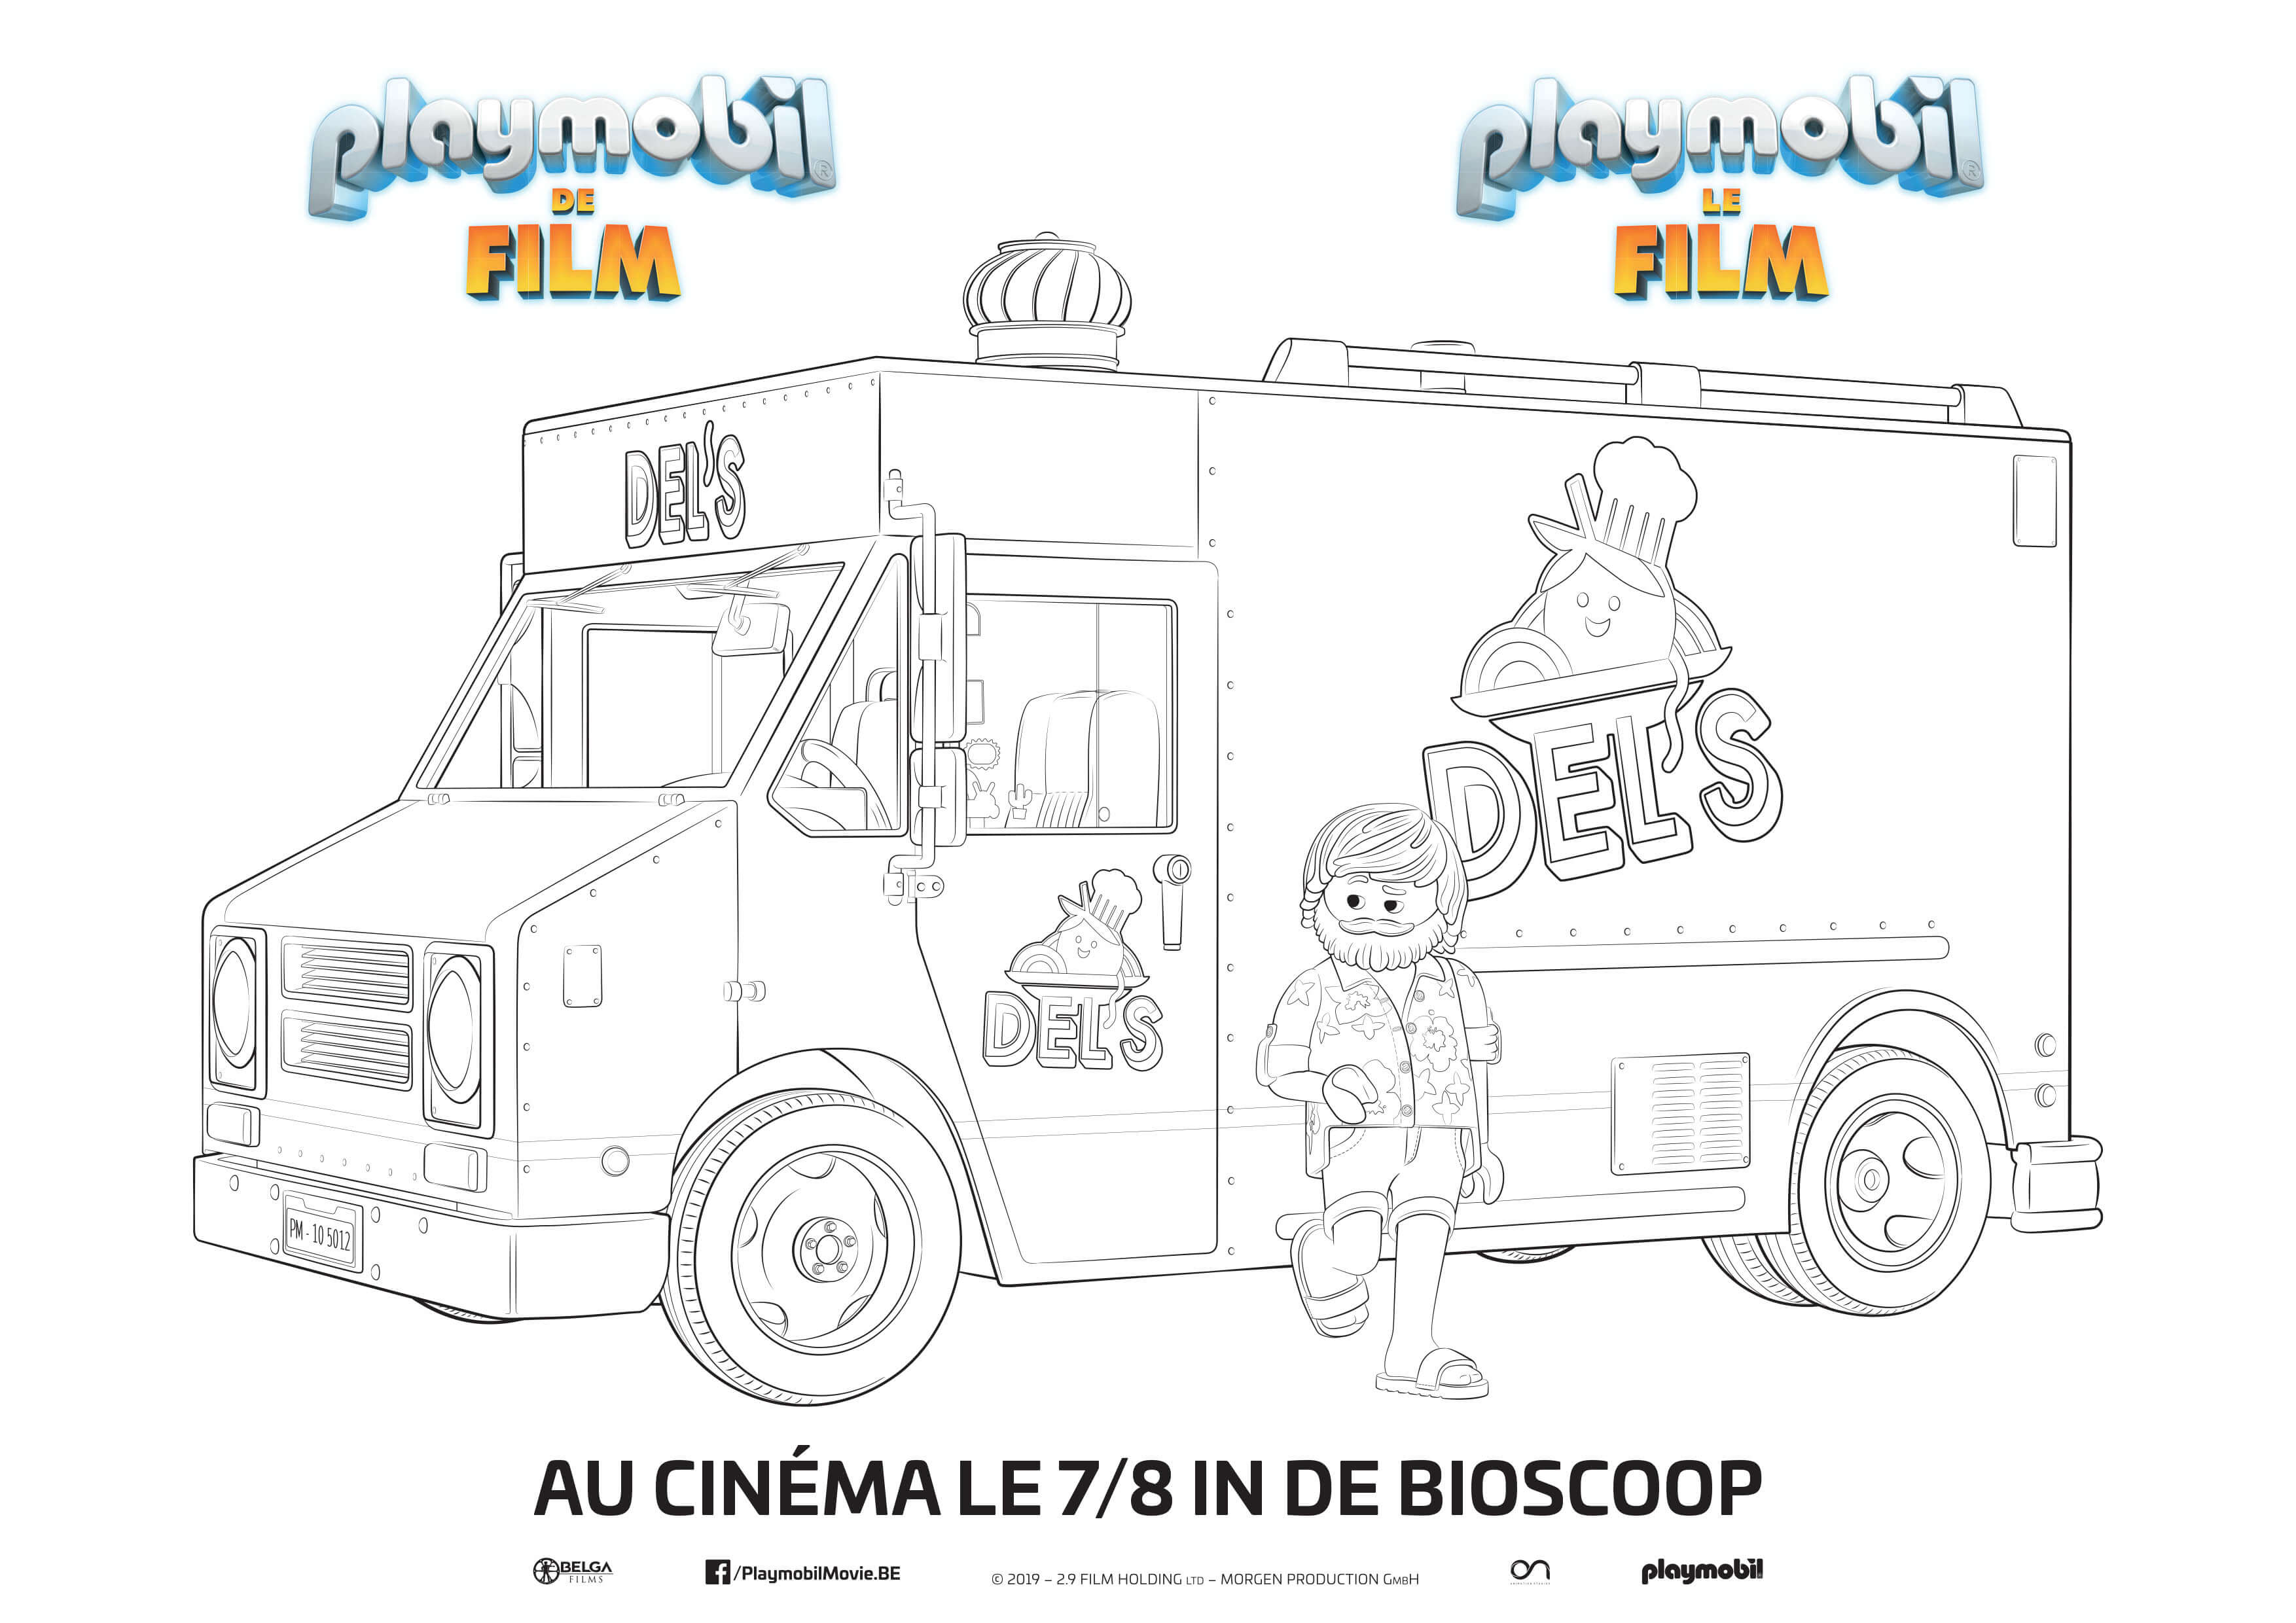 Image 1 of the Playmobil le Film gallery